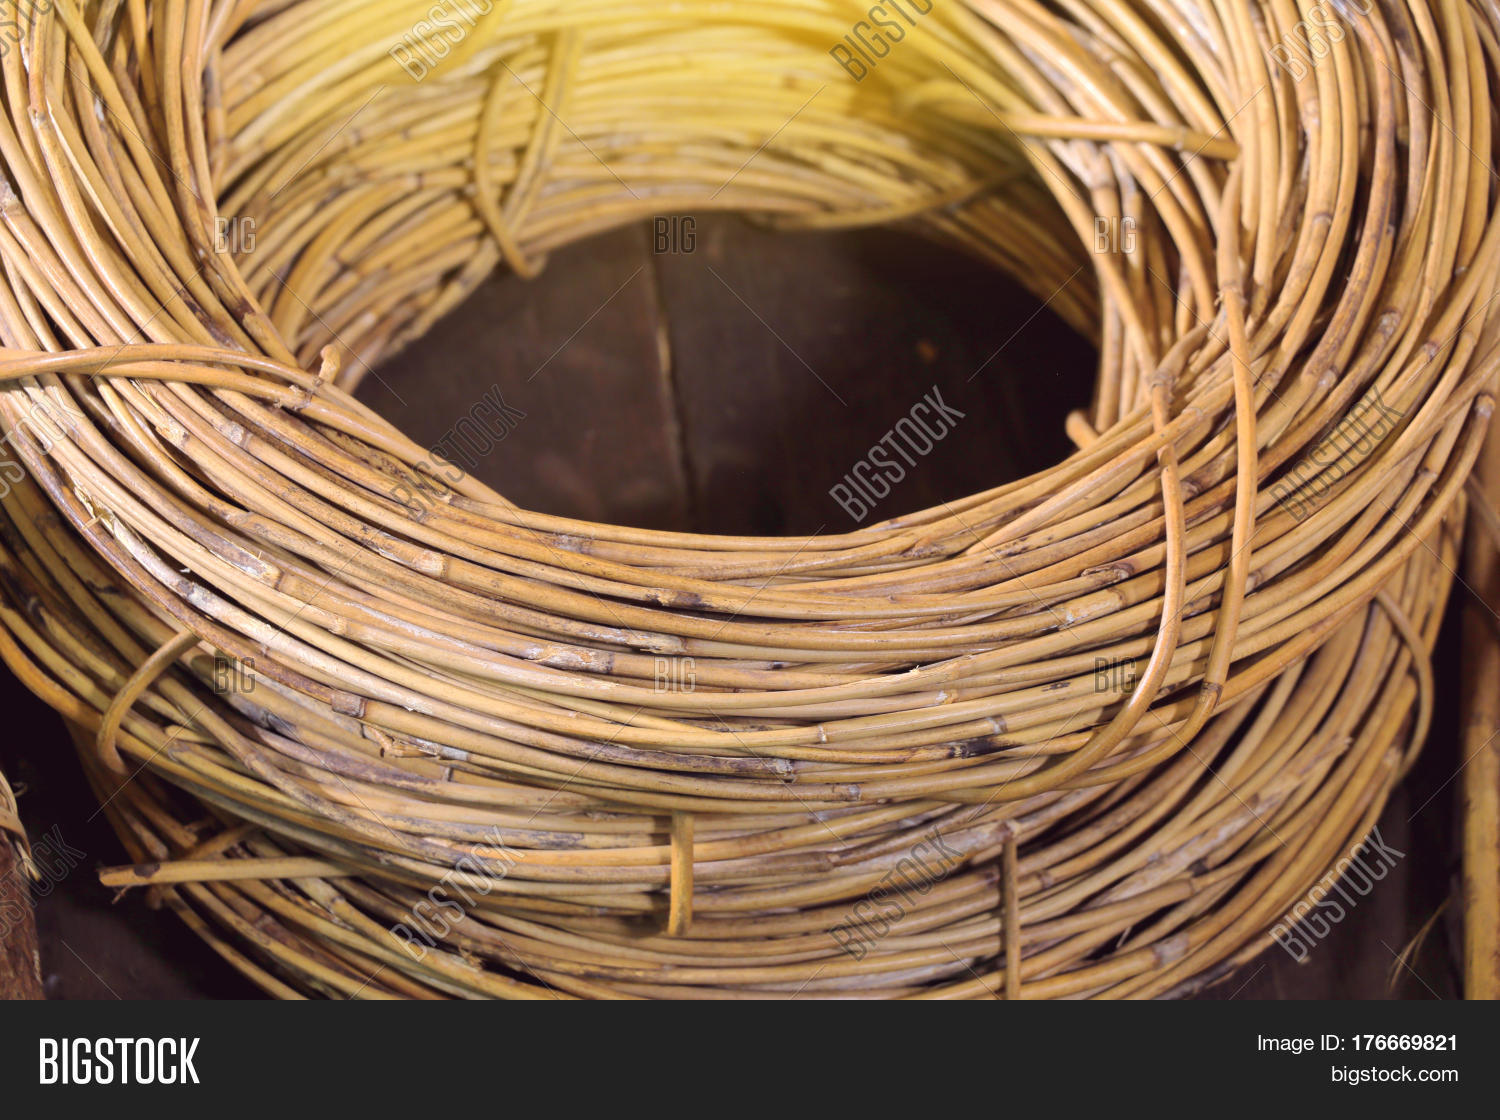 Materials Used For Making A Basket : Rattan materials used make basket image photo bigstock